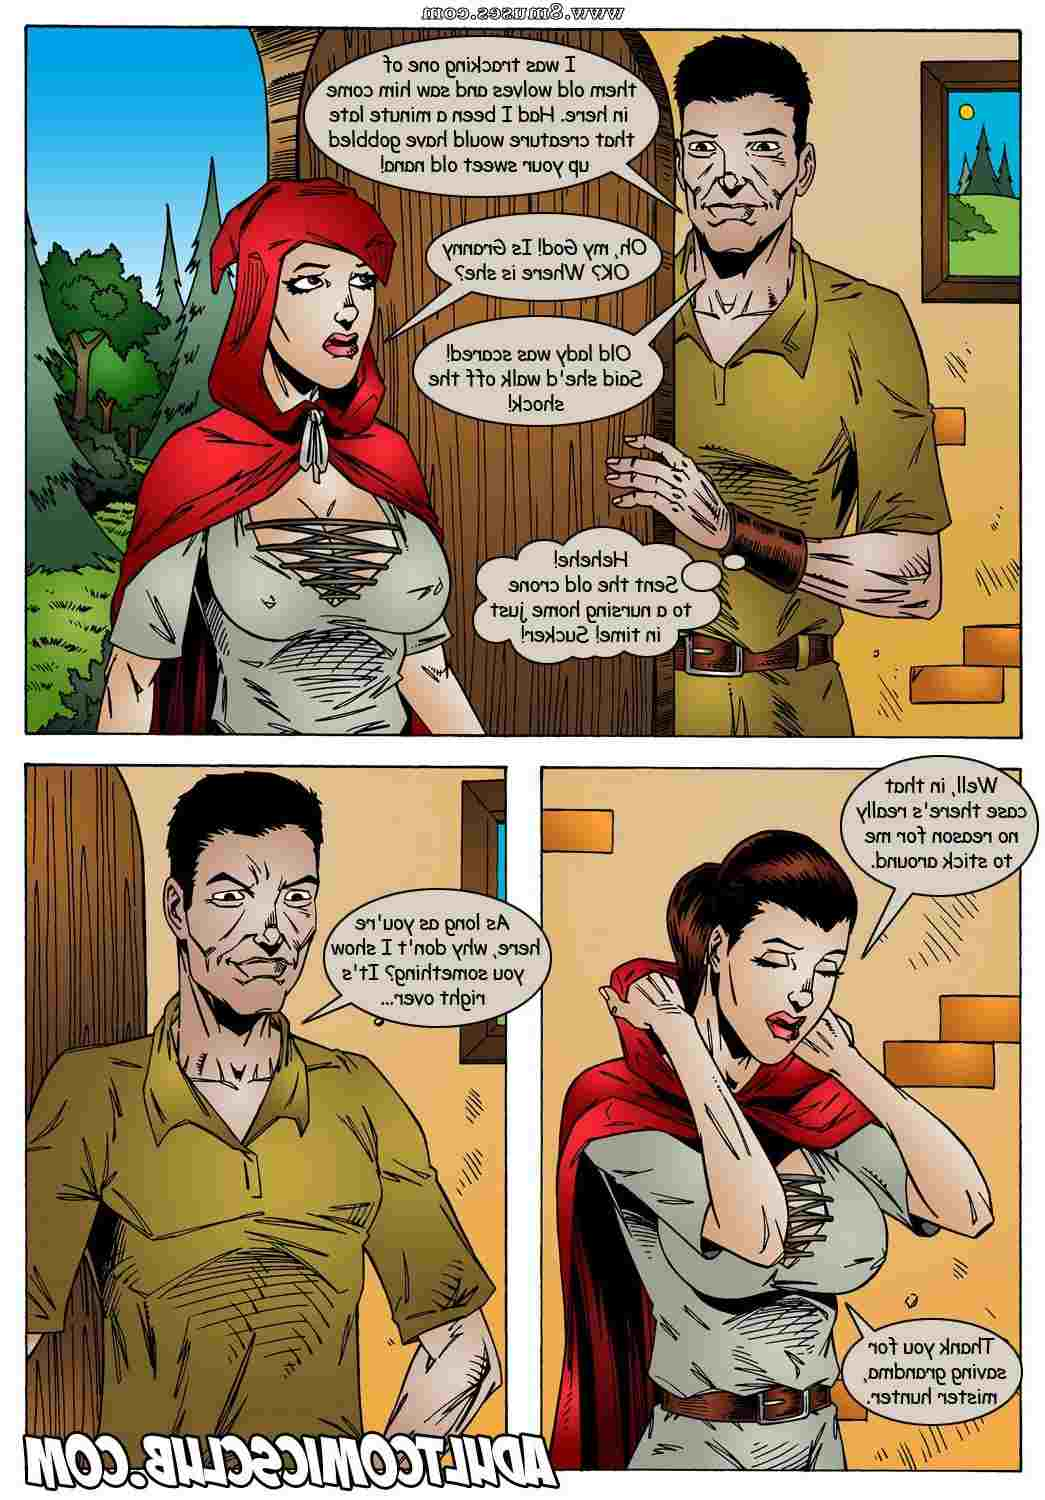 AdultComicsClub_com-Collection/Little-Red-Riding-Hood Little_Red_Riding_Hood__8muses_-_Sex_and_Porn_Comics_4.jpg